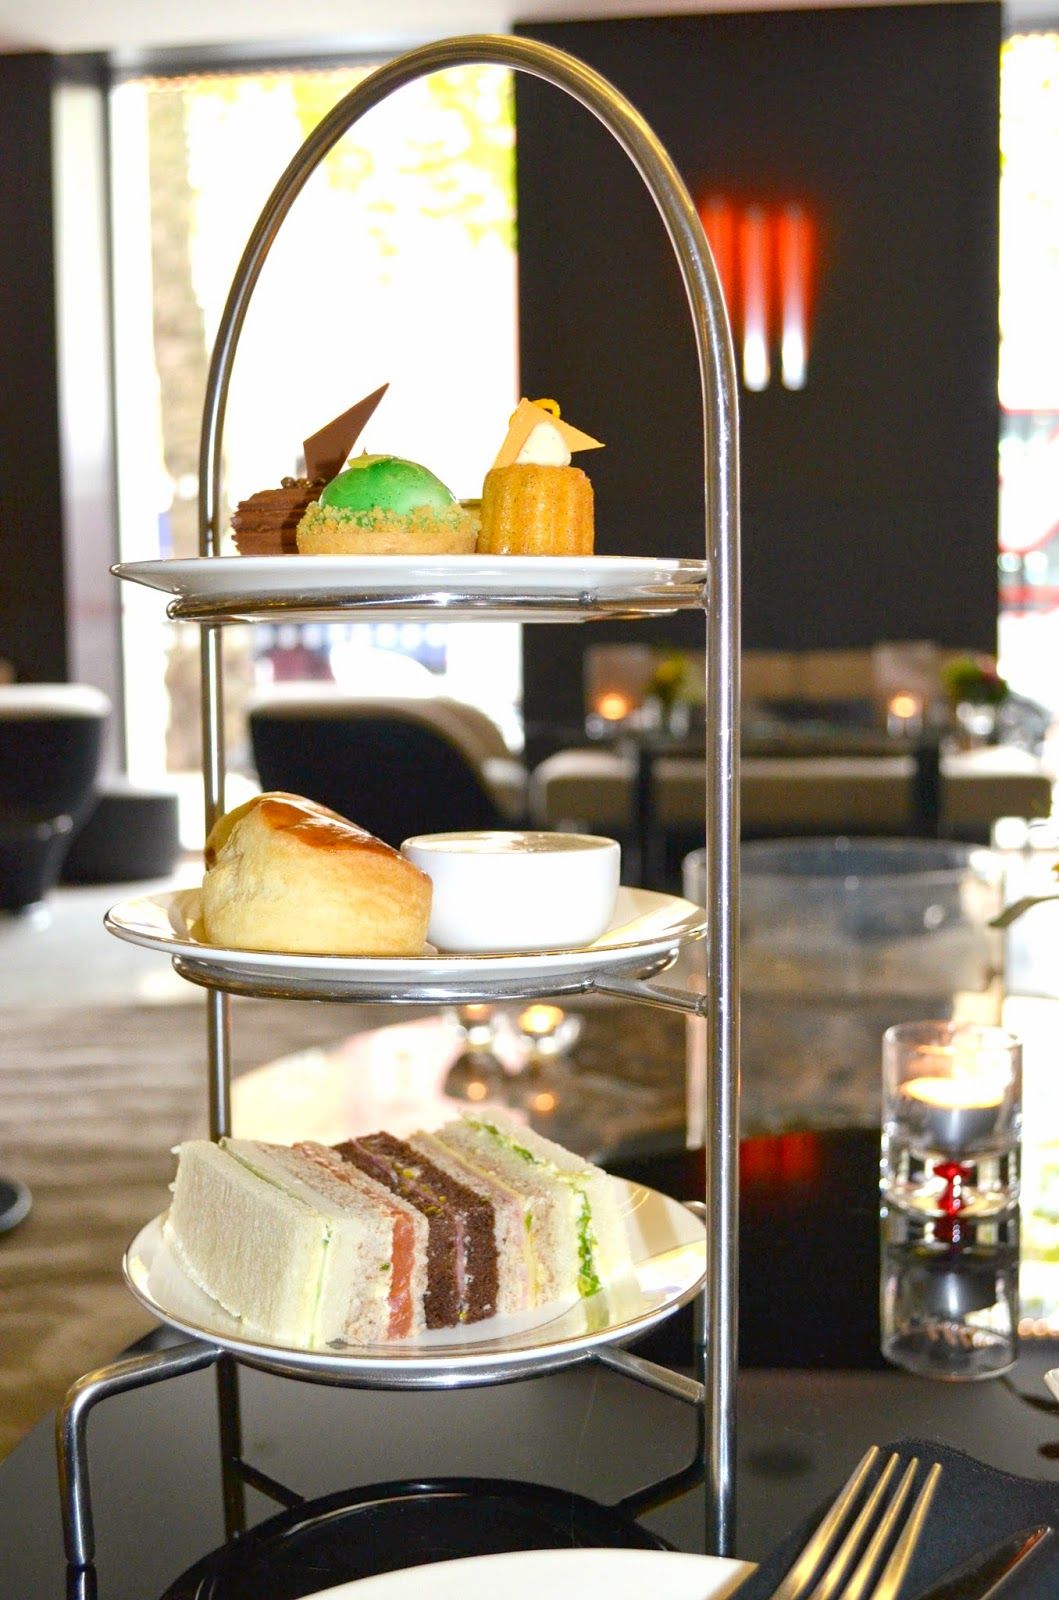 Afternoon Tea at The ME Hotel